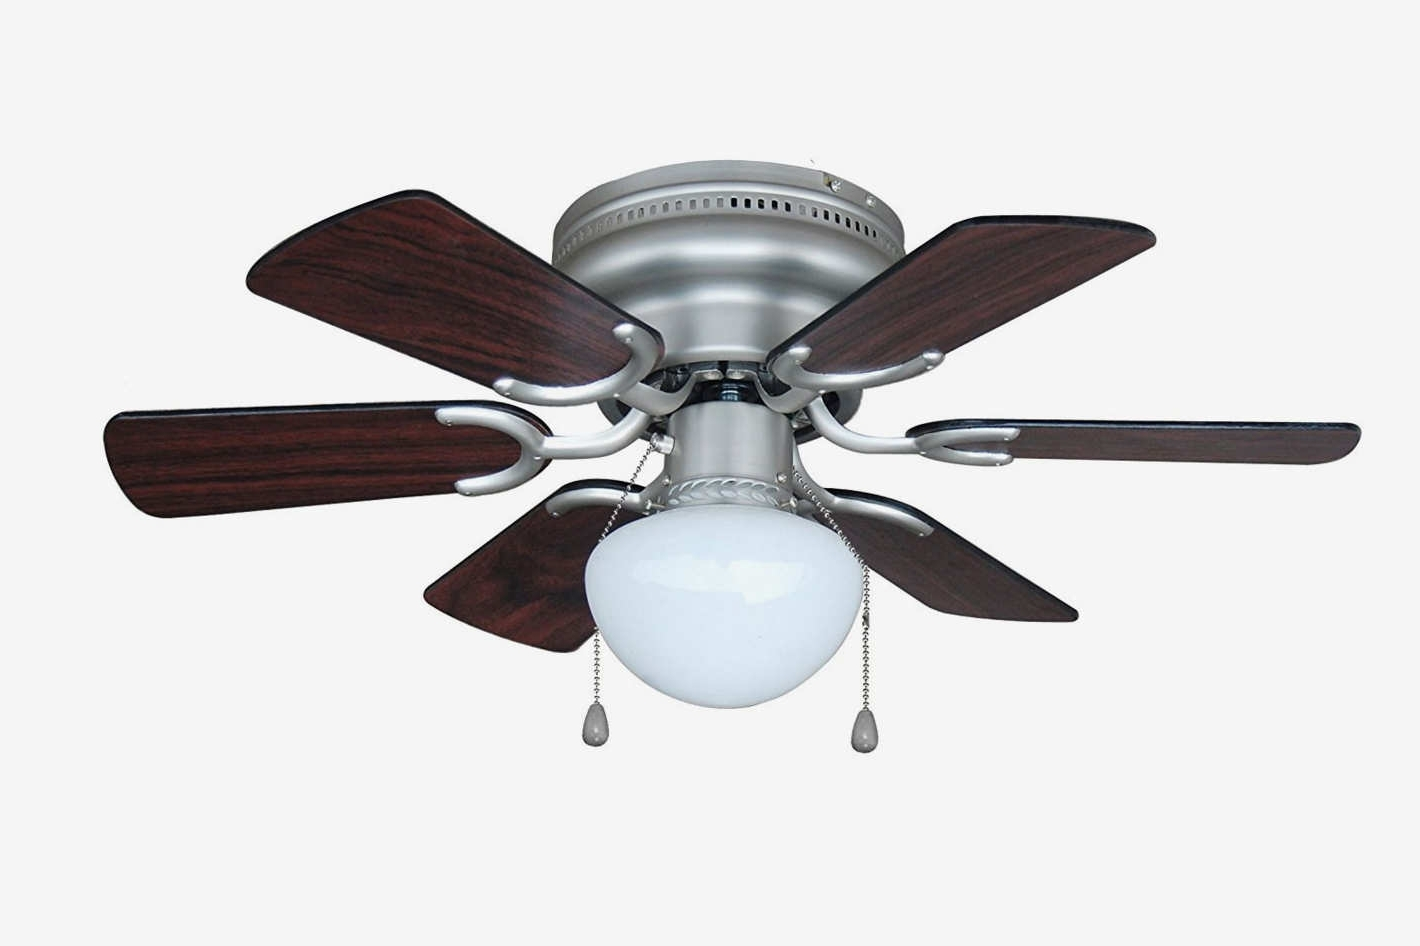 2019 The 9 Best Ceiling Fans On Amazon 2018 Pertaining To Outdoor Ceiling Fans Under $ (View 13 of 20)